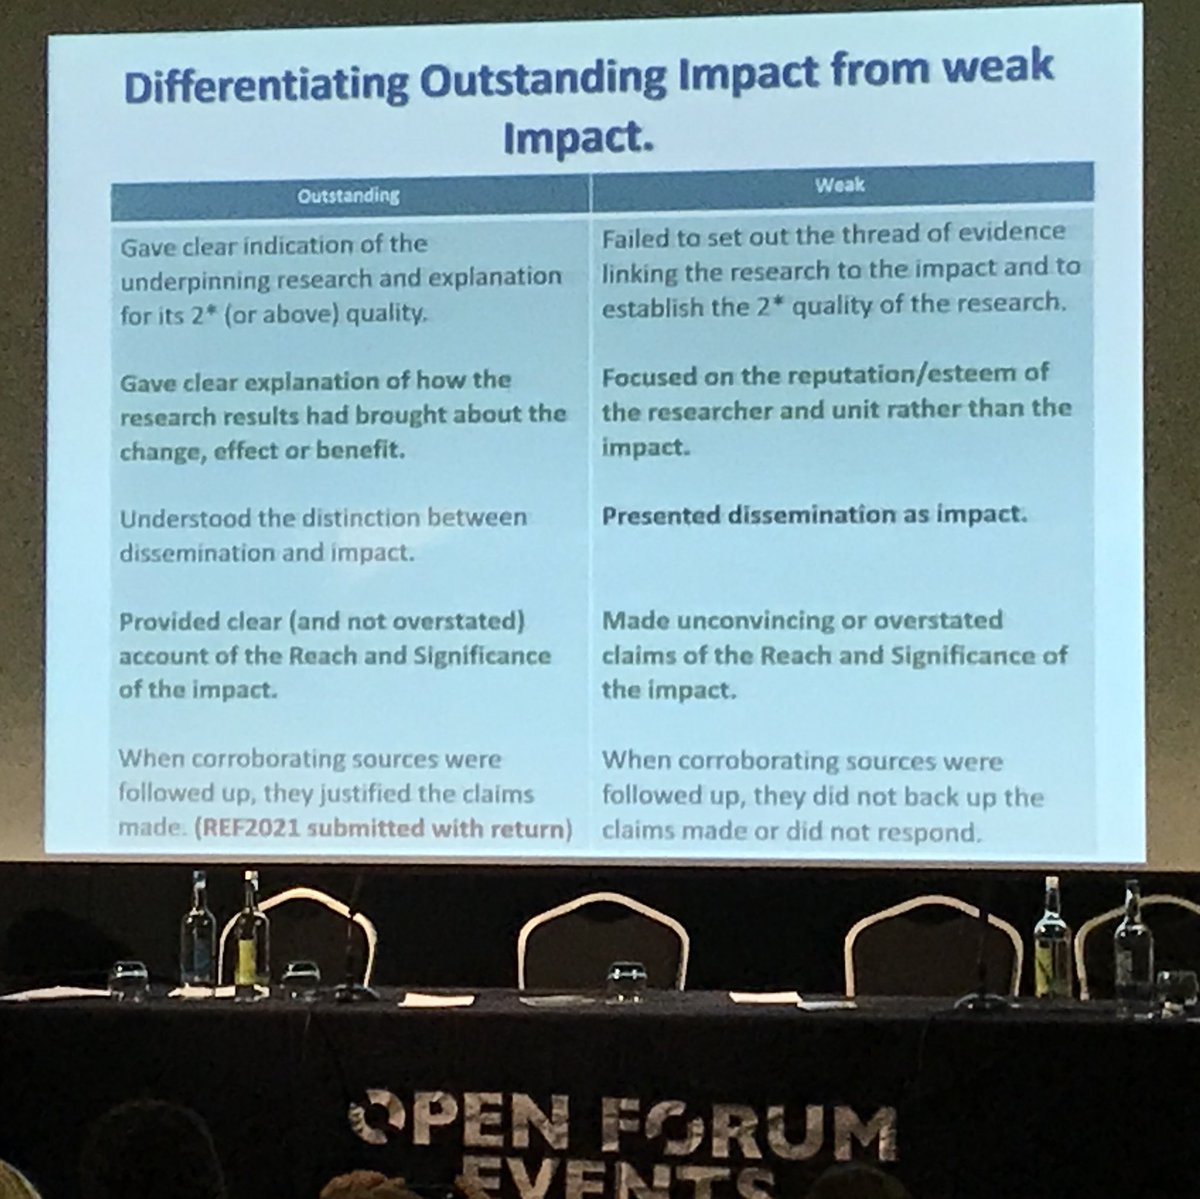 .@Hughmckh on Differentiating Outstanding Impact from Weak Impact #REFOFE <br>http://pic.twitter.com/ydGwfAmyuP